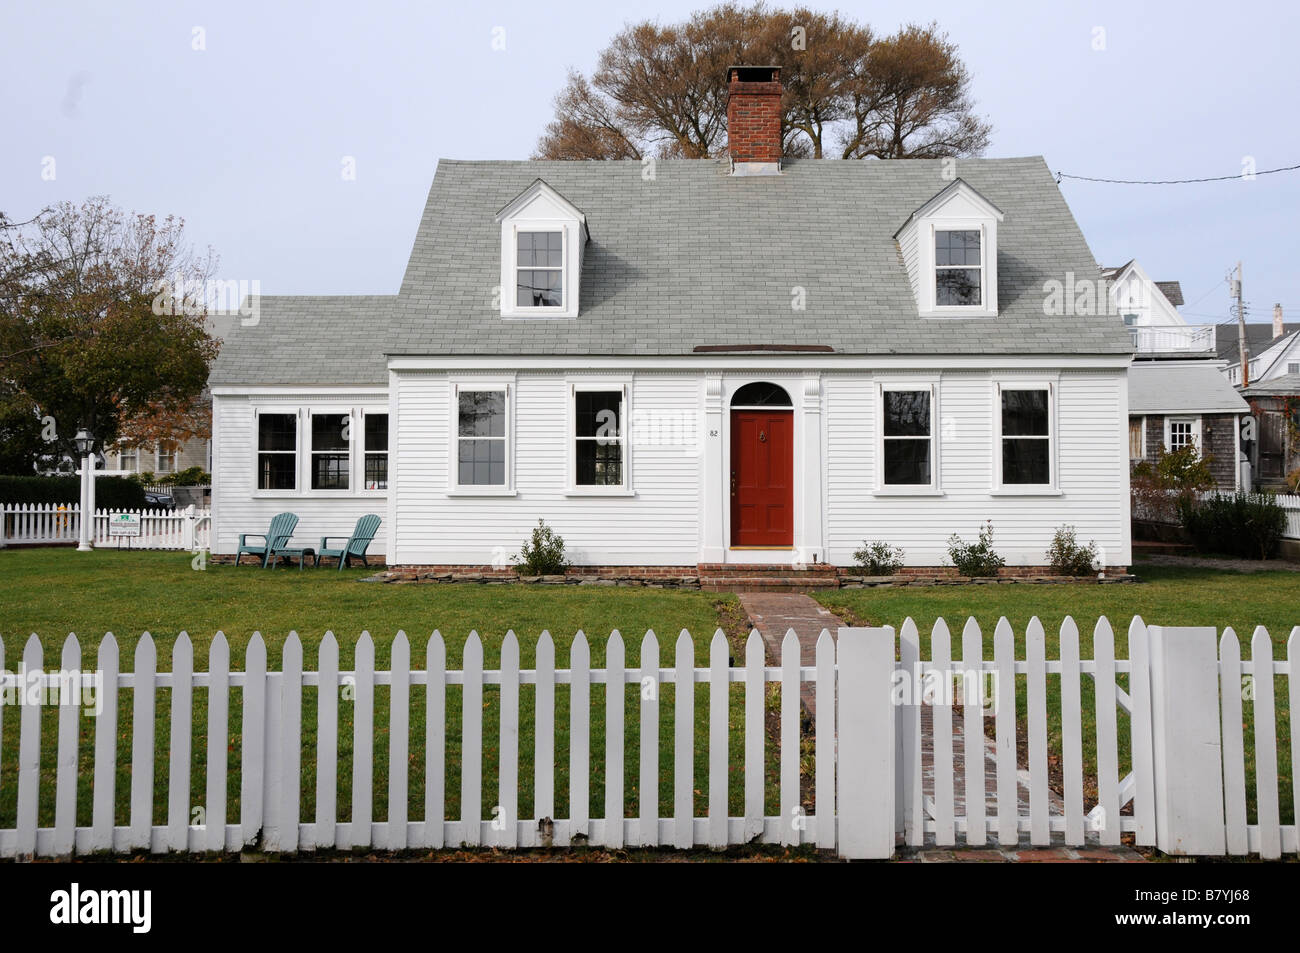 Traditional New England Home With White Picket Fence Stock Photo